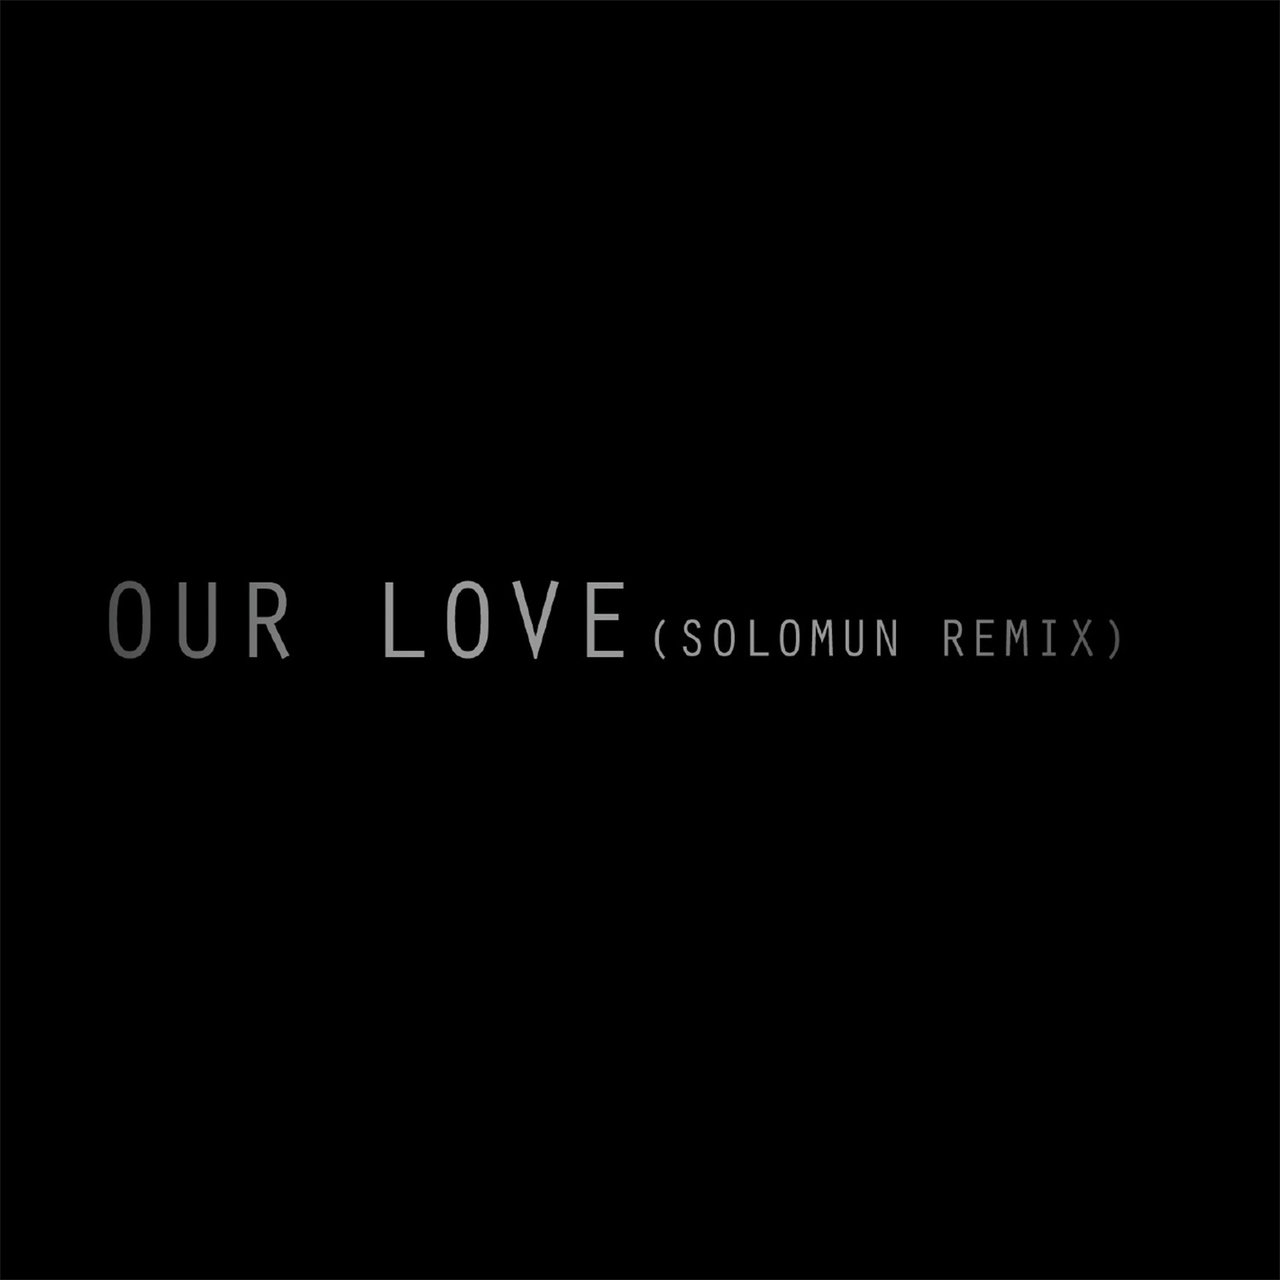 Our Love (Solomun Remix)